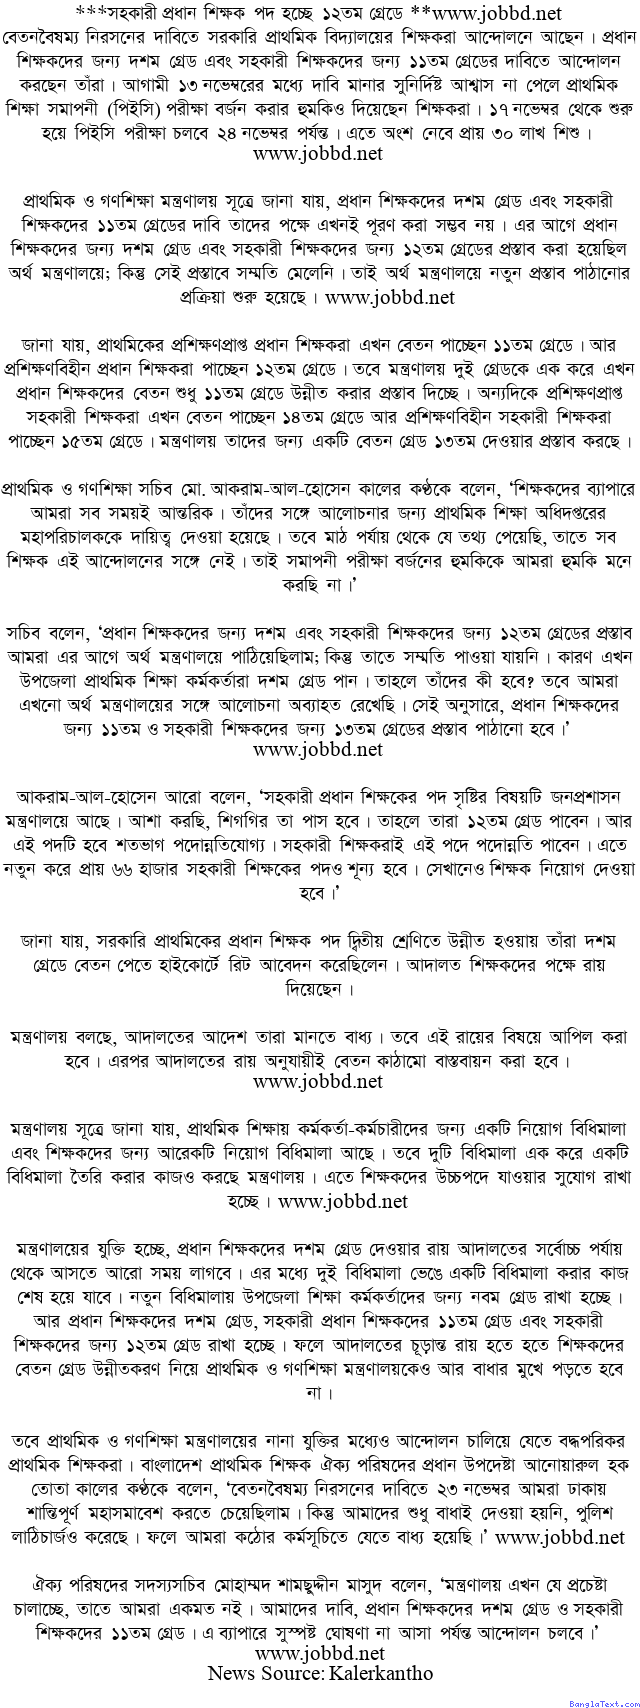 Primary Assistant Teacher Job Circular 2020 Related Notice